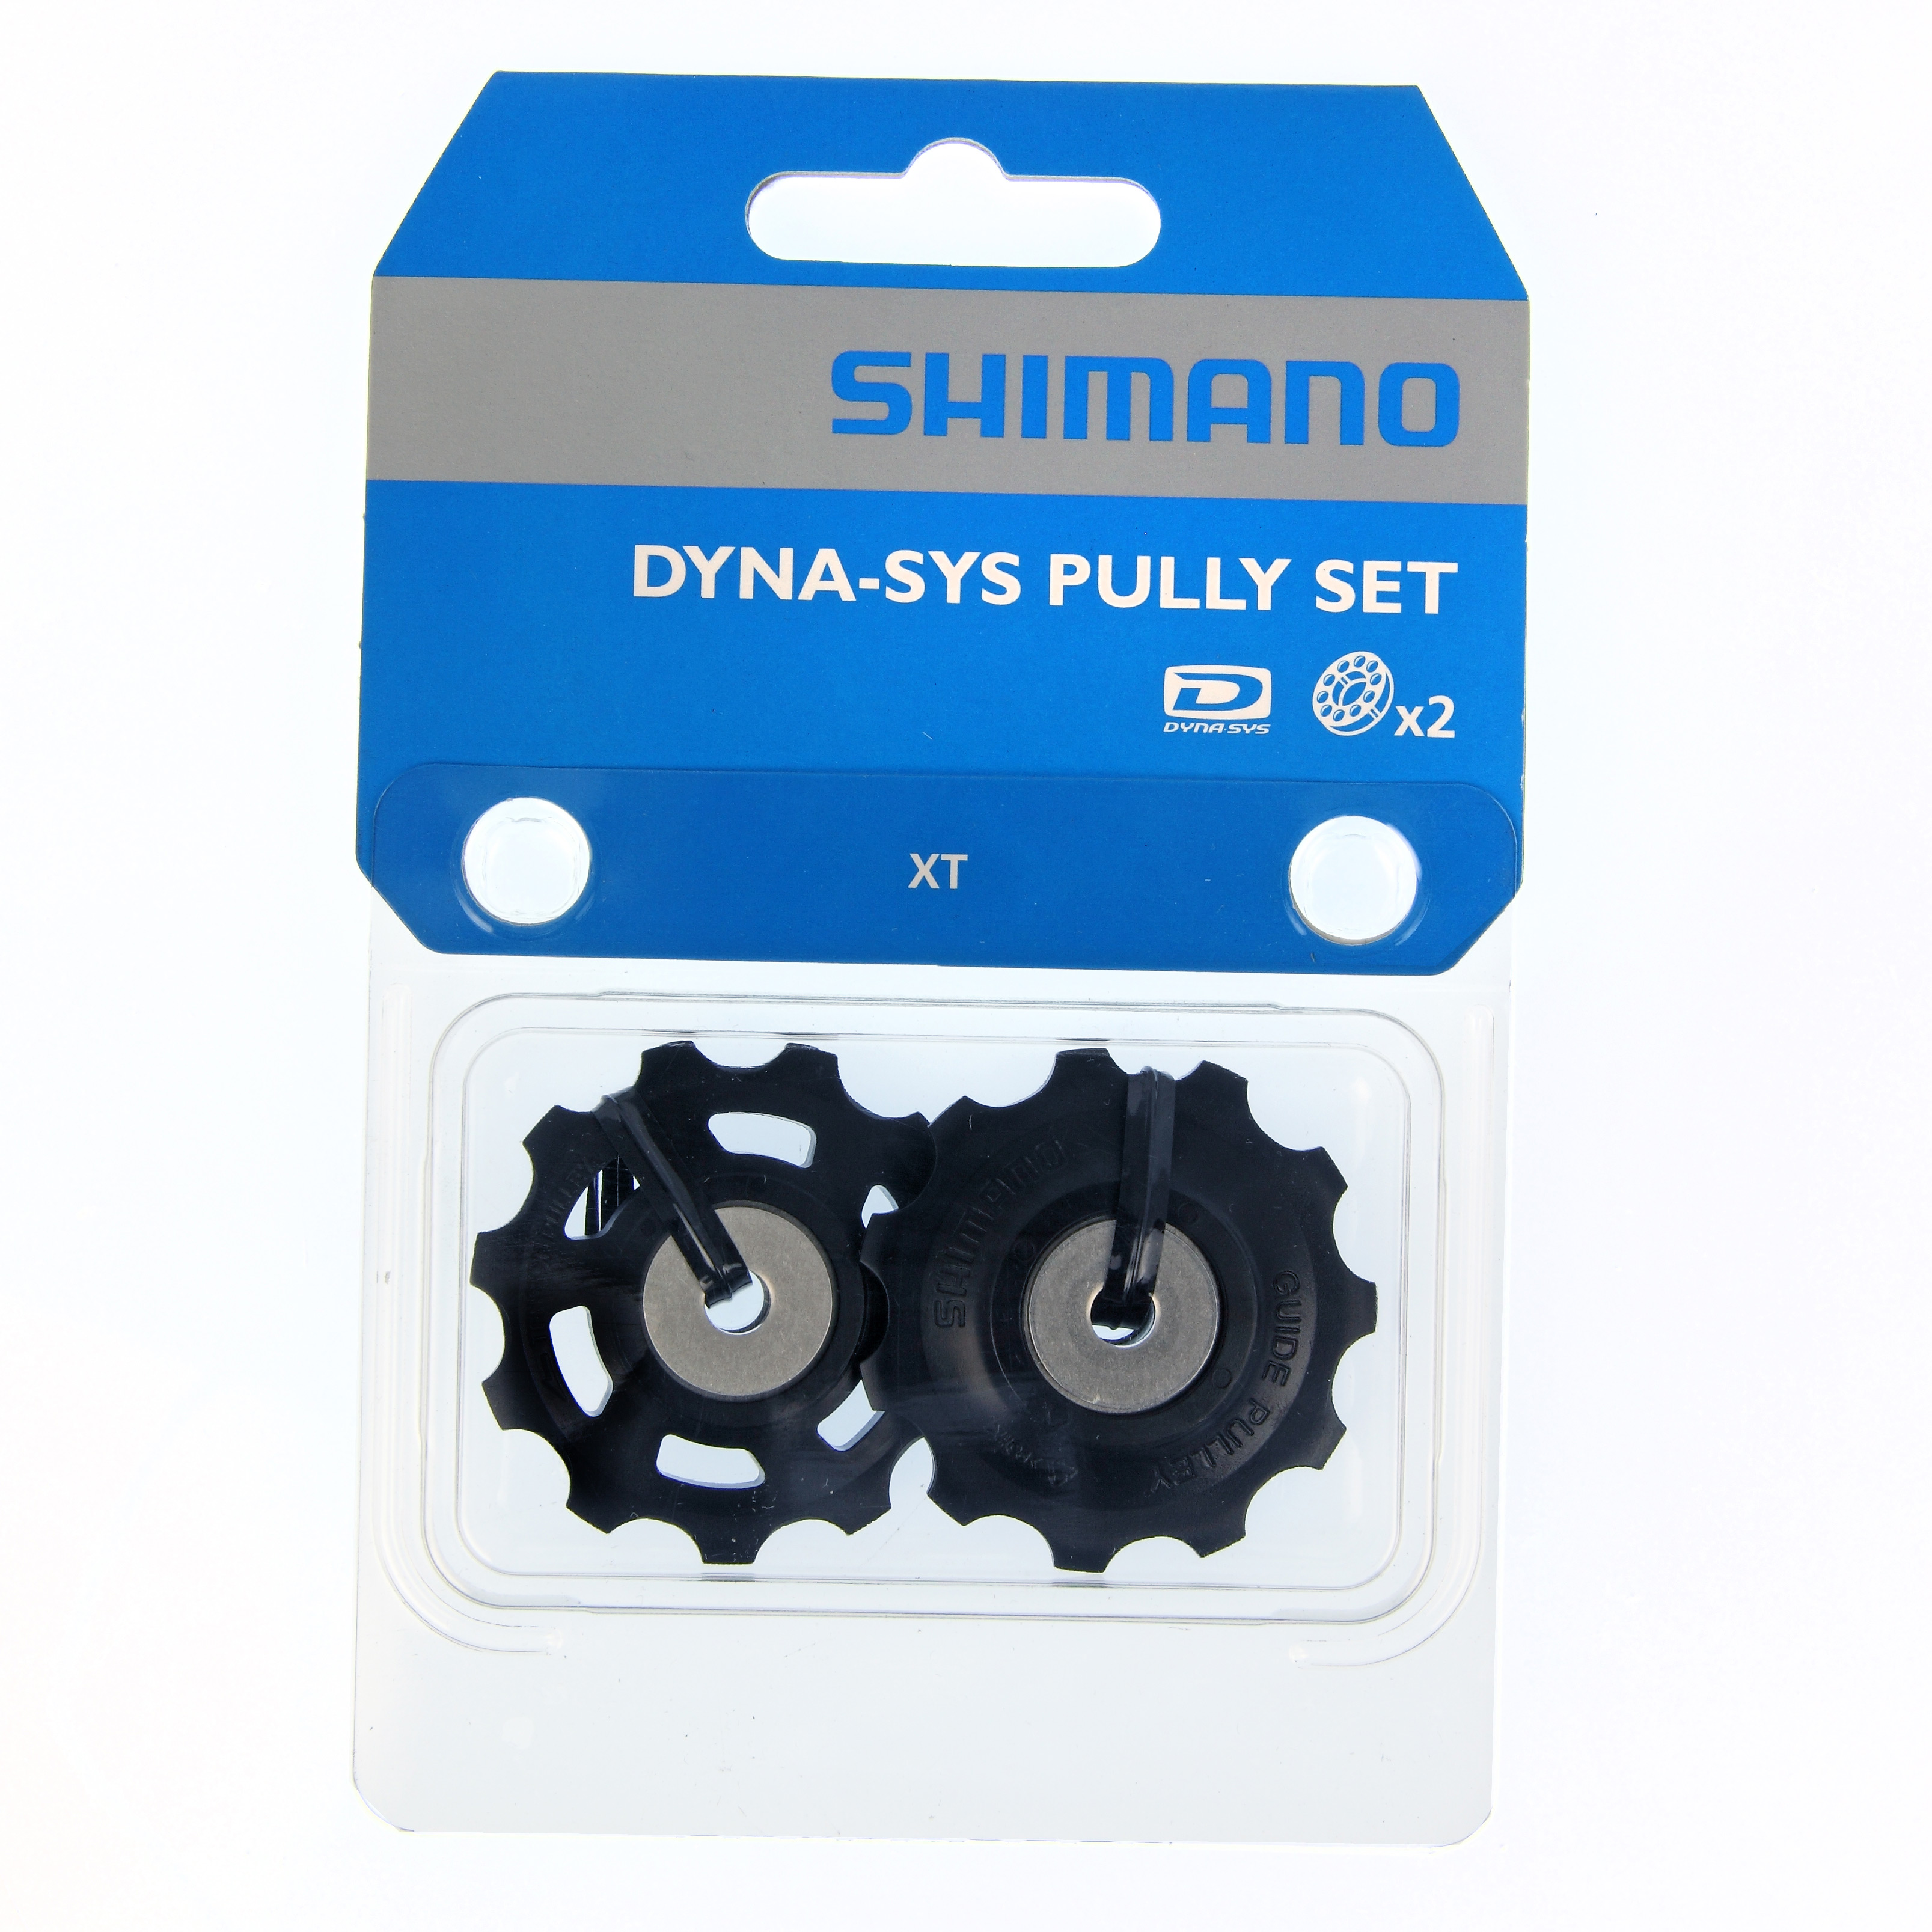 SHIMANO RD-M773 GUIDE & TENSION PULLEY SET